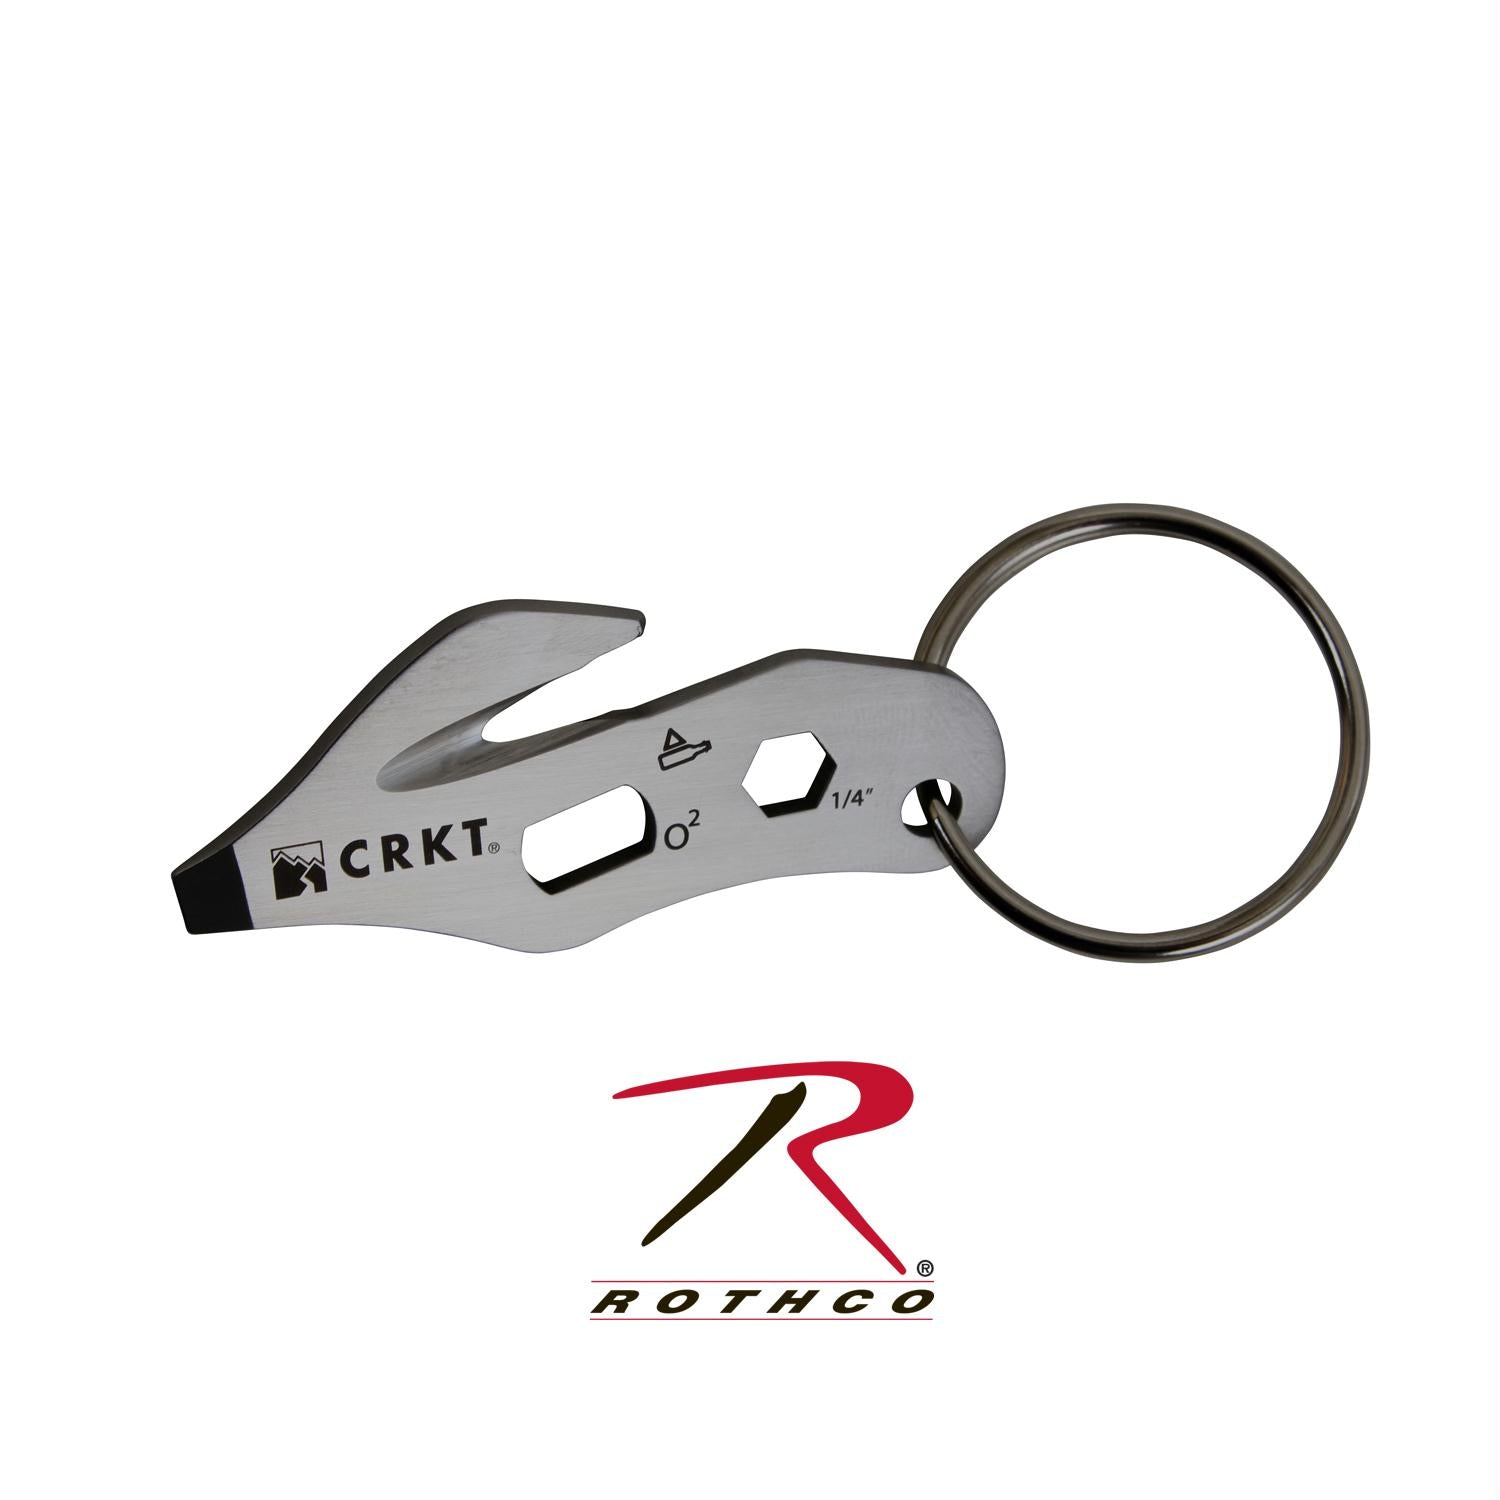 Colombia River Crkt Kert-Key Ring Emergency Rescue Tool